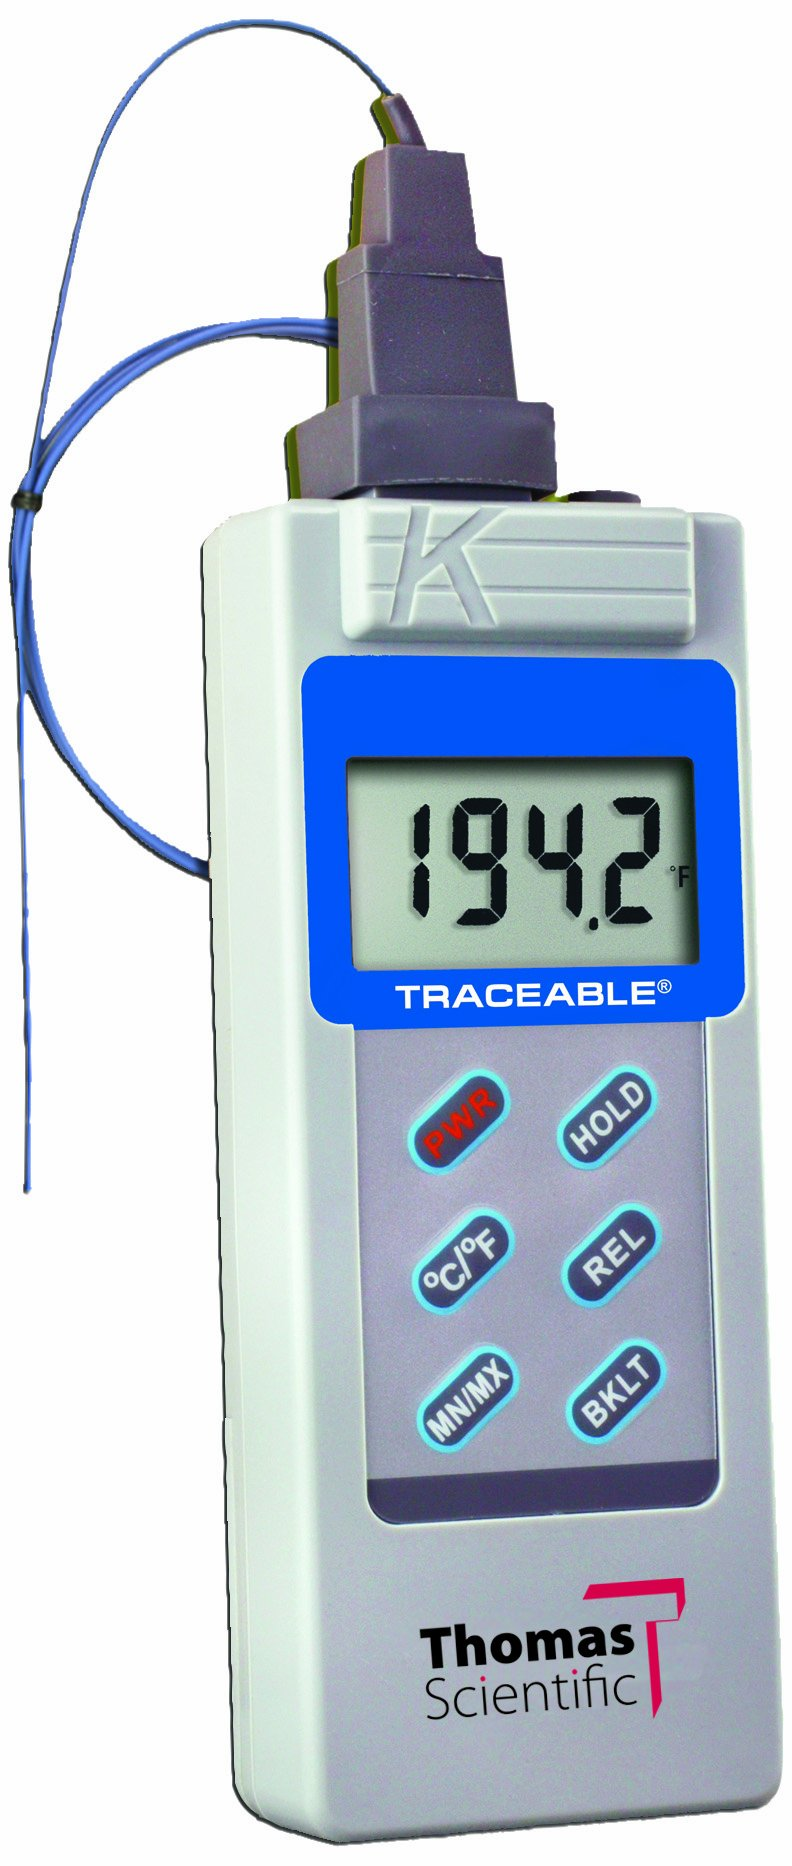 Thomas Traceable Big Digit Type K Thermometer, -58 to 2000 degree F, -50 to 1300 degree C